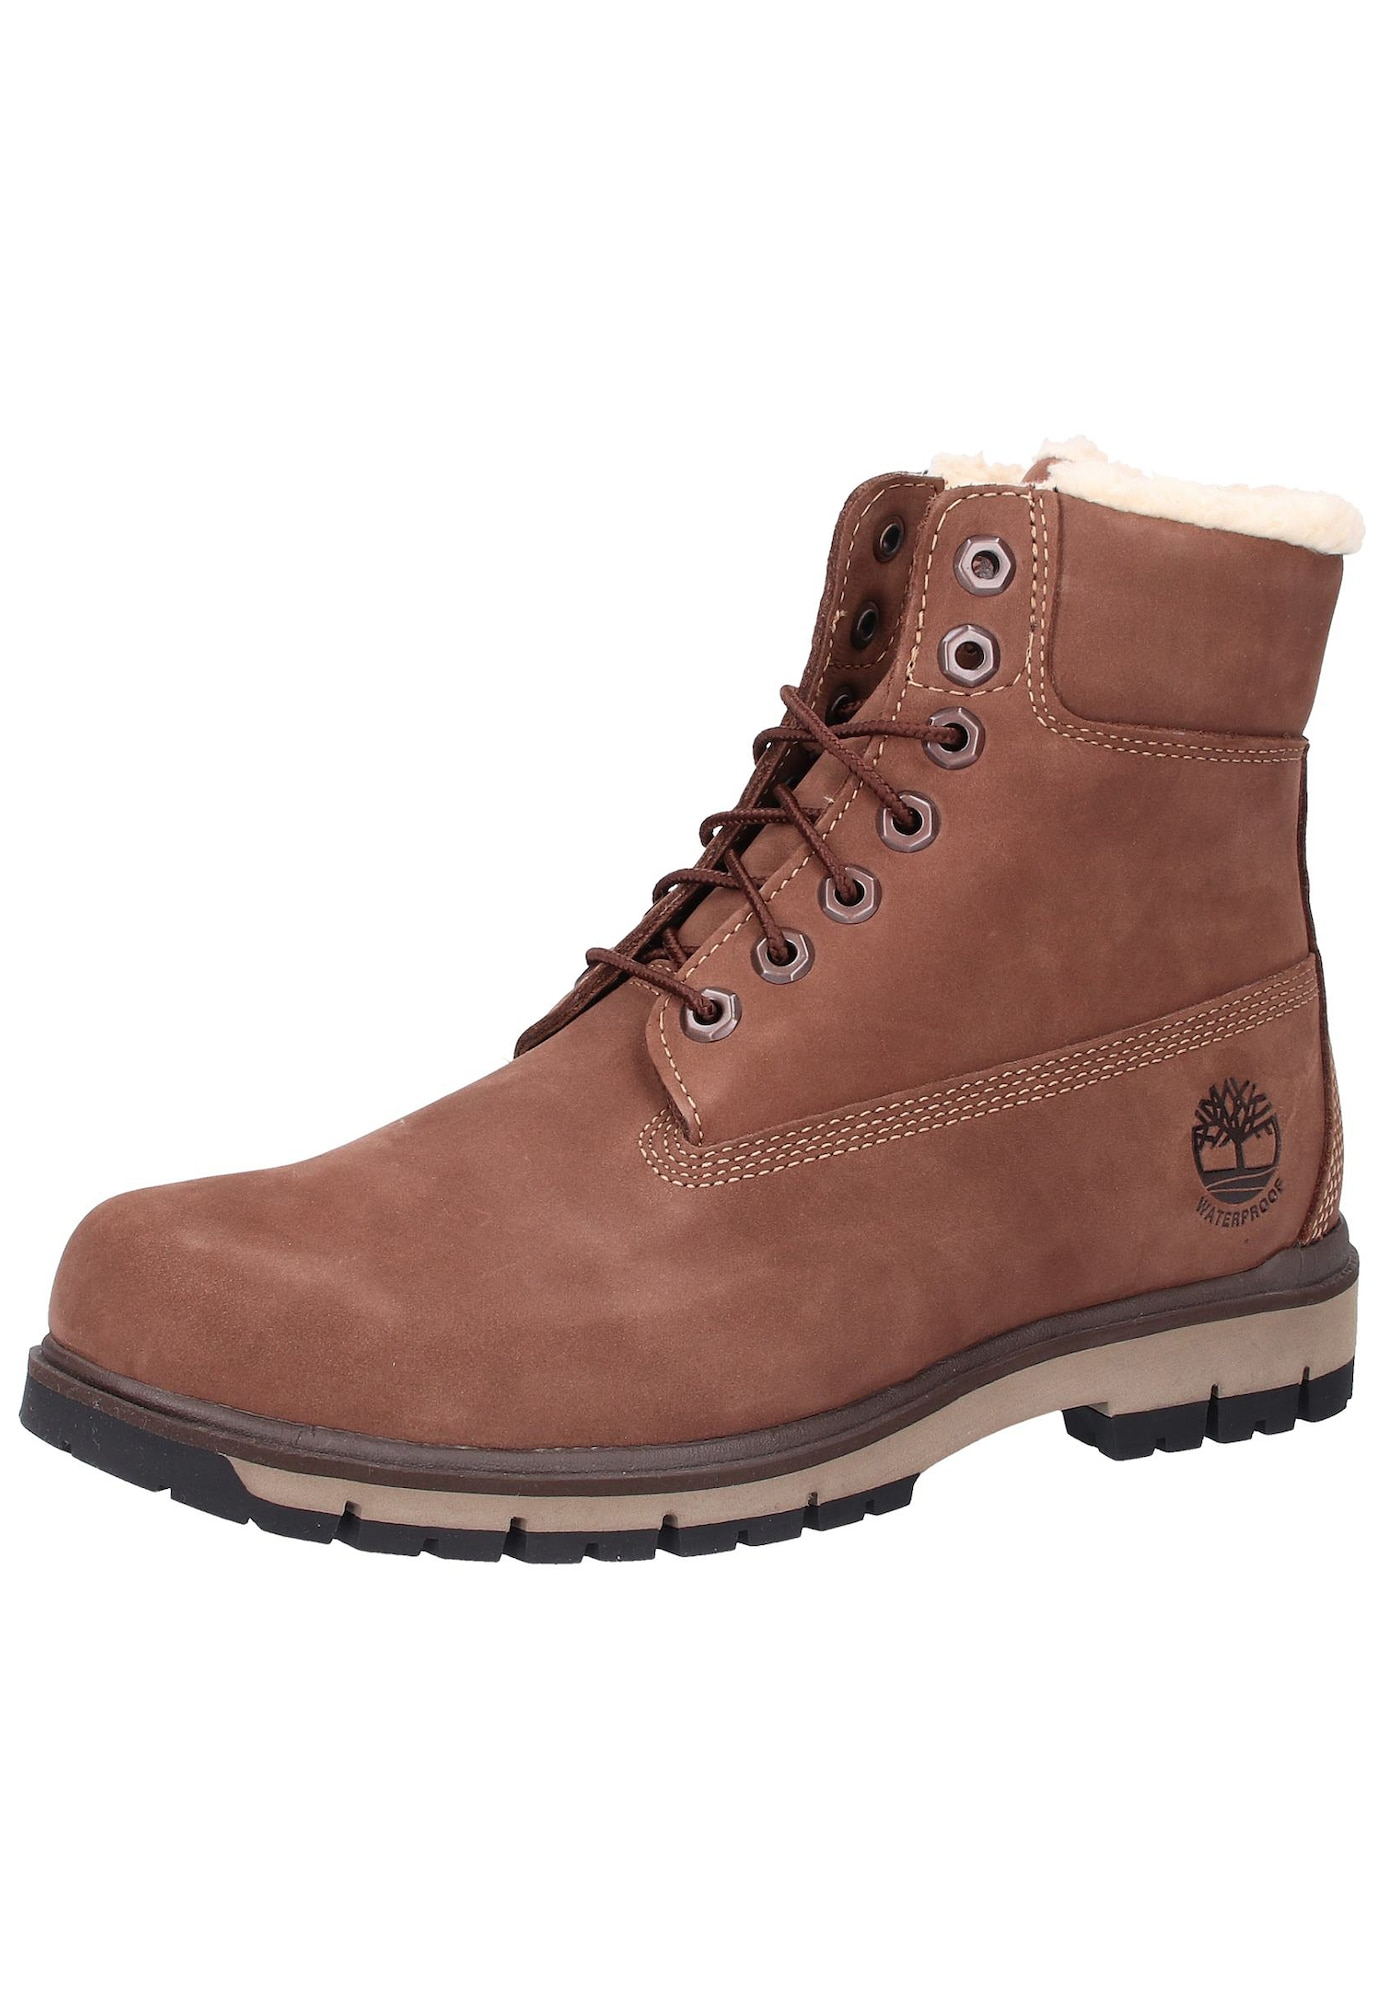 Stiefelette | Schuhe > Boots > Stiefel | Timberland